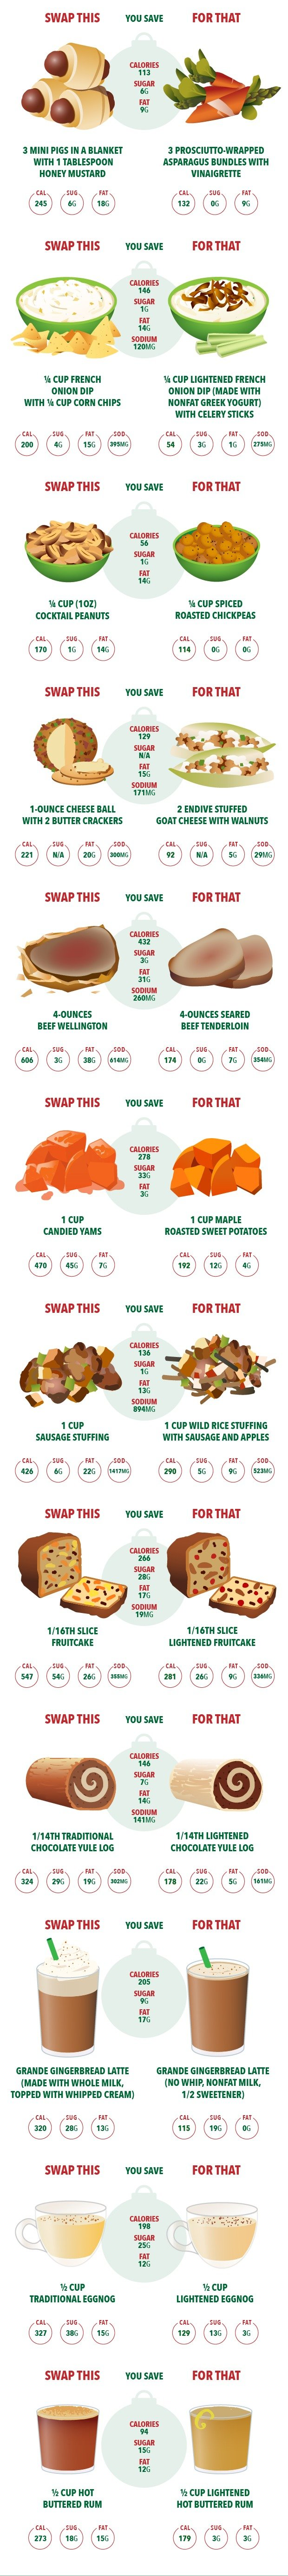 12-Holiday-Food-Swaps-Final